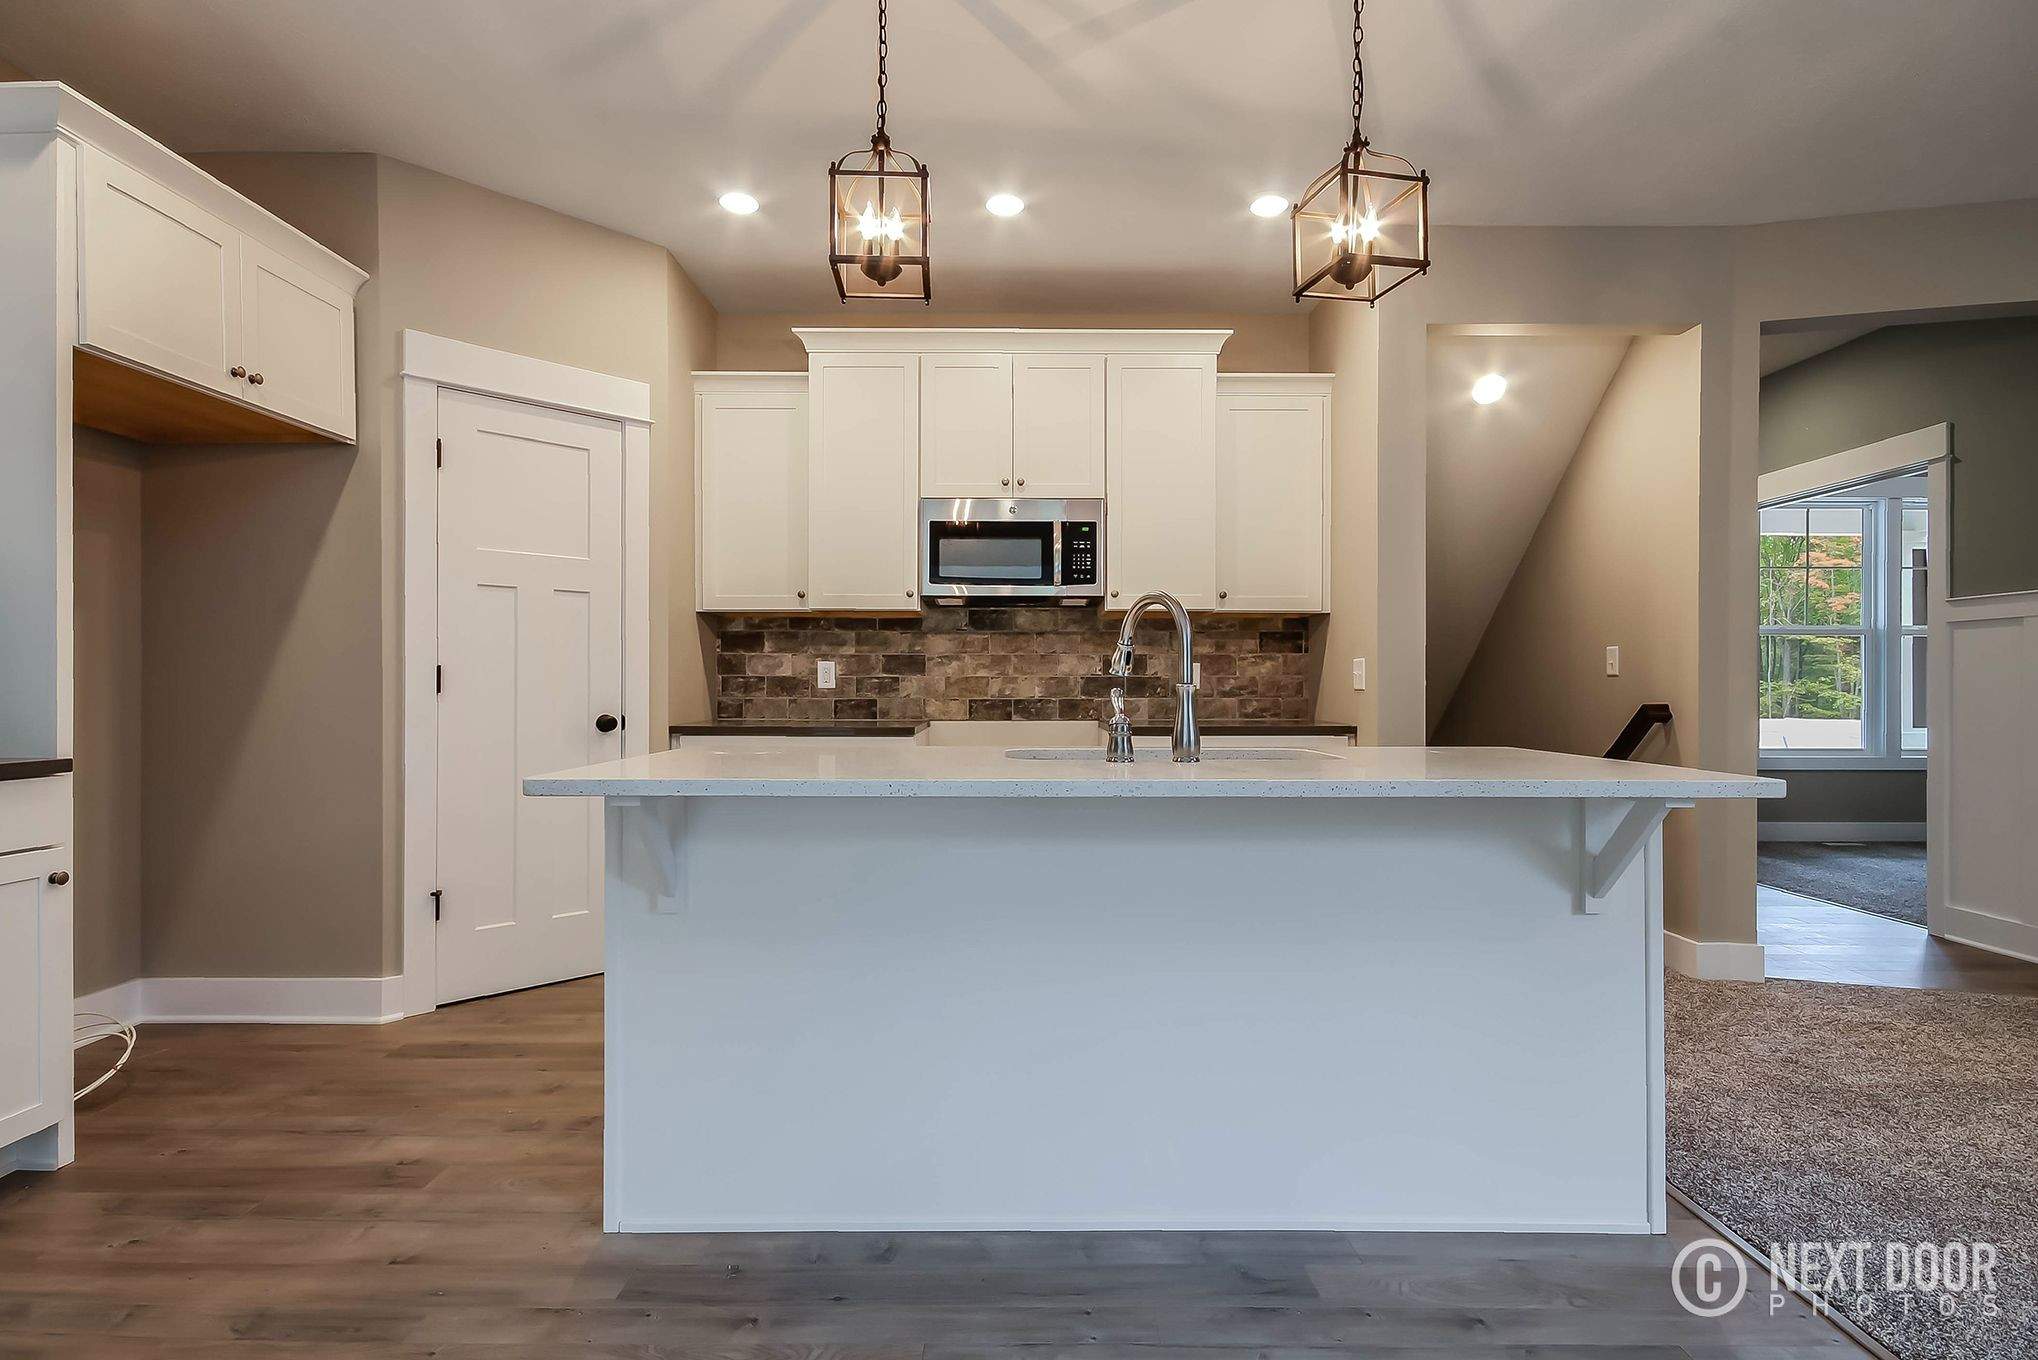 Lovely White Kitchen Island in our Stockton Home